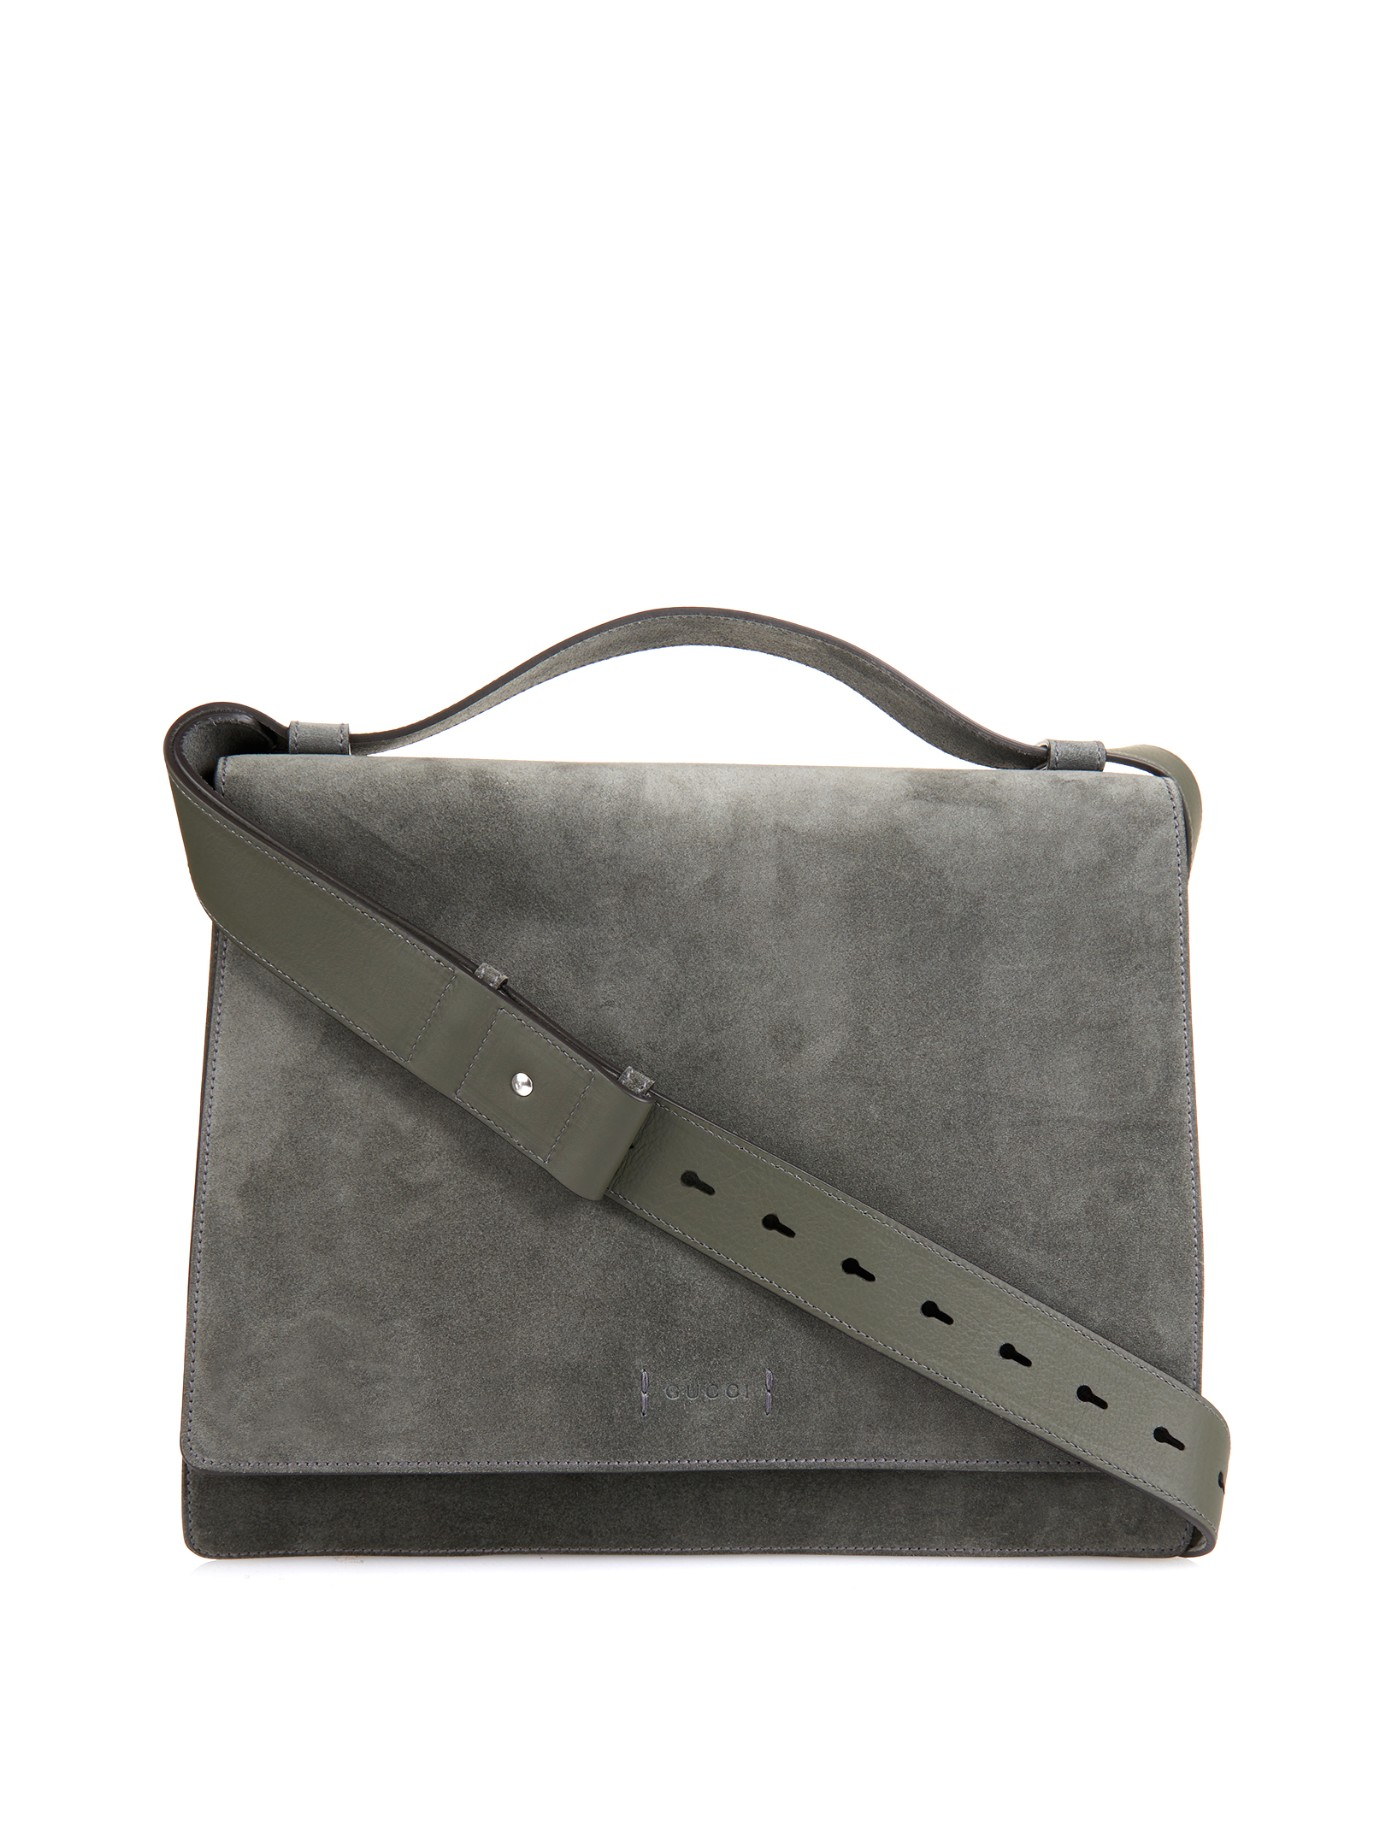 Gucci Suede Messenger Bag in Gray for Men | Lyst